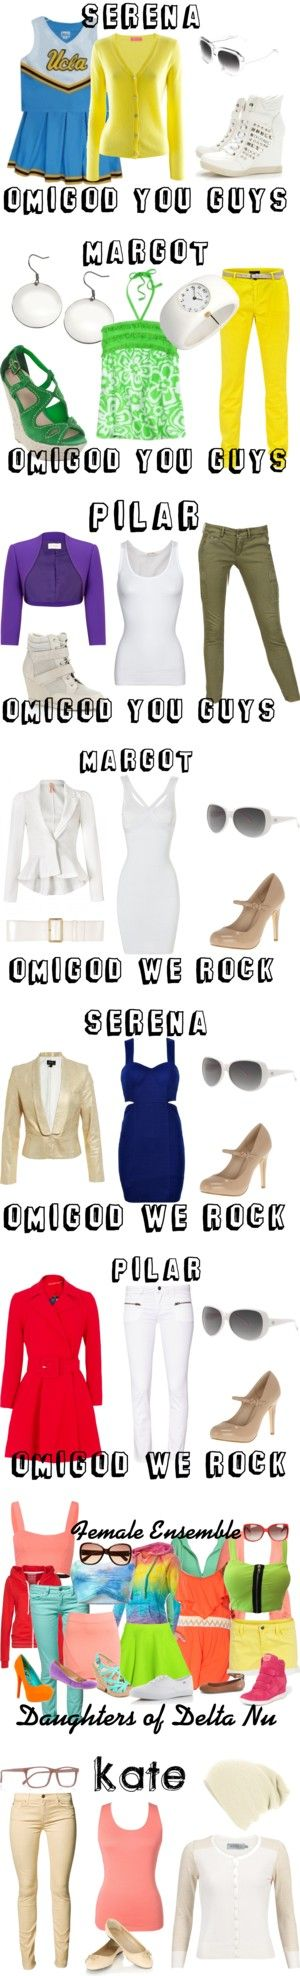 Legally Blonde Costumes: The Girls of Delta Nu by camposj on Polyvore featuring FTC Cashmere, Wallis, MASSADA, legally blonde, Reeds Jewelers, SuperTrash, Human Premium, Carvela Kurt Geiger, Planet and Maison Clochard